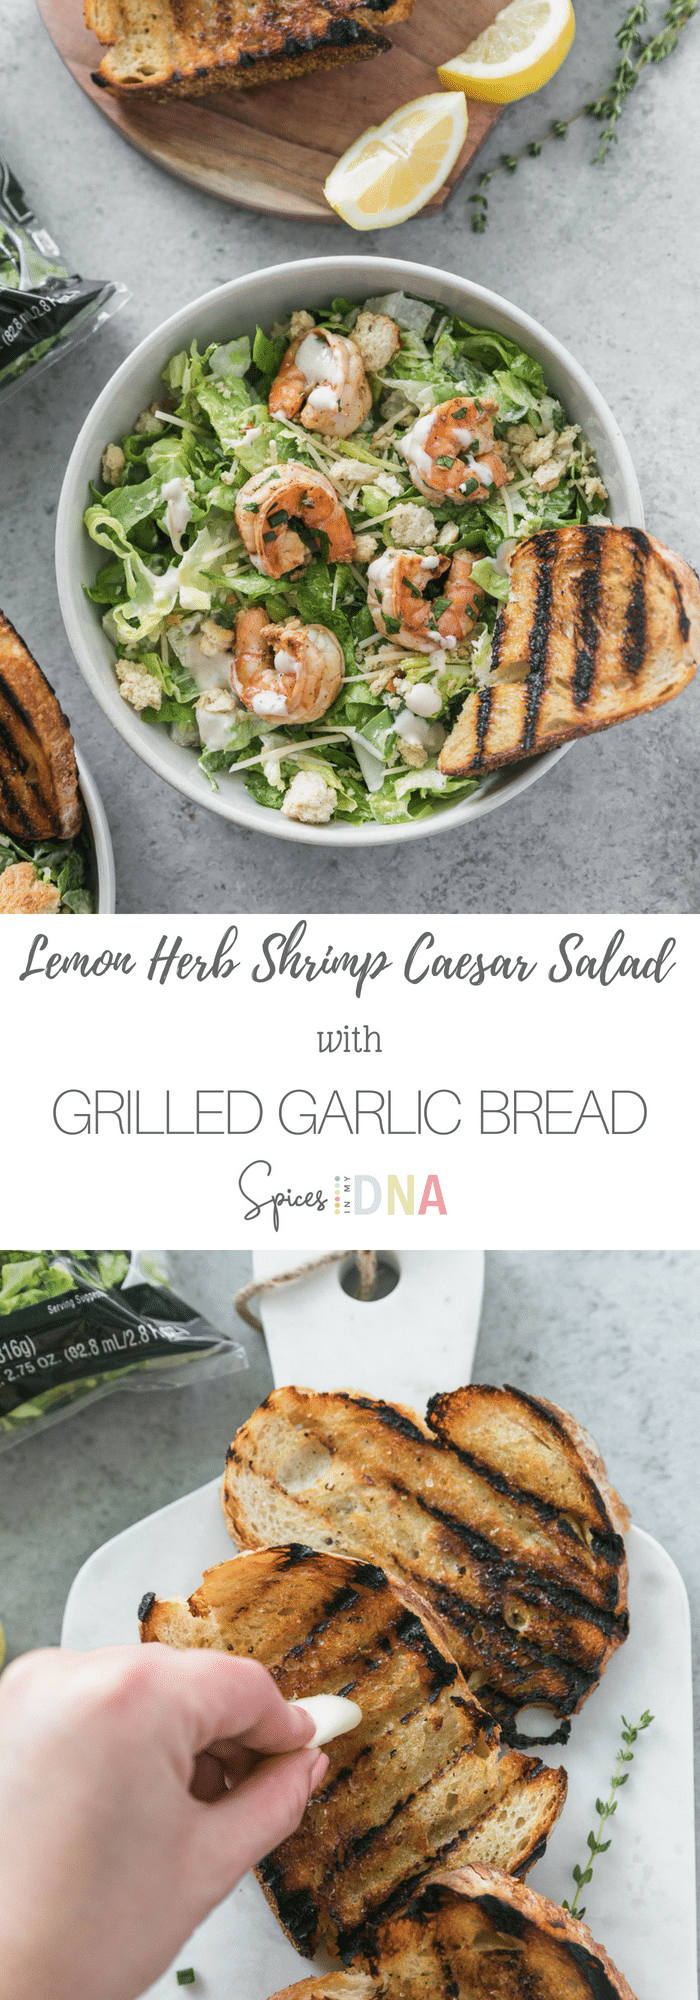 This Lemon Herb Shrimp Caesar Salad with Grilled Garlic Bread is a super simple, flavorful, and satisfying summer salad that takes just minutes to make! We've got marinated lemon garlic shrimp tossed in fresh herbs, parmesan cheese, crushed croutons, creamy Caesar dressing, and crusty grilled garlic bread. Sign me up! #salad #caesar #shrimp